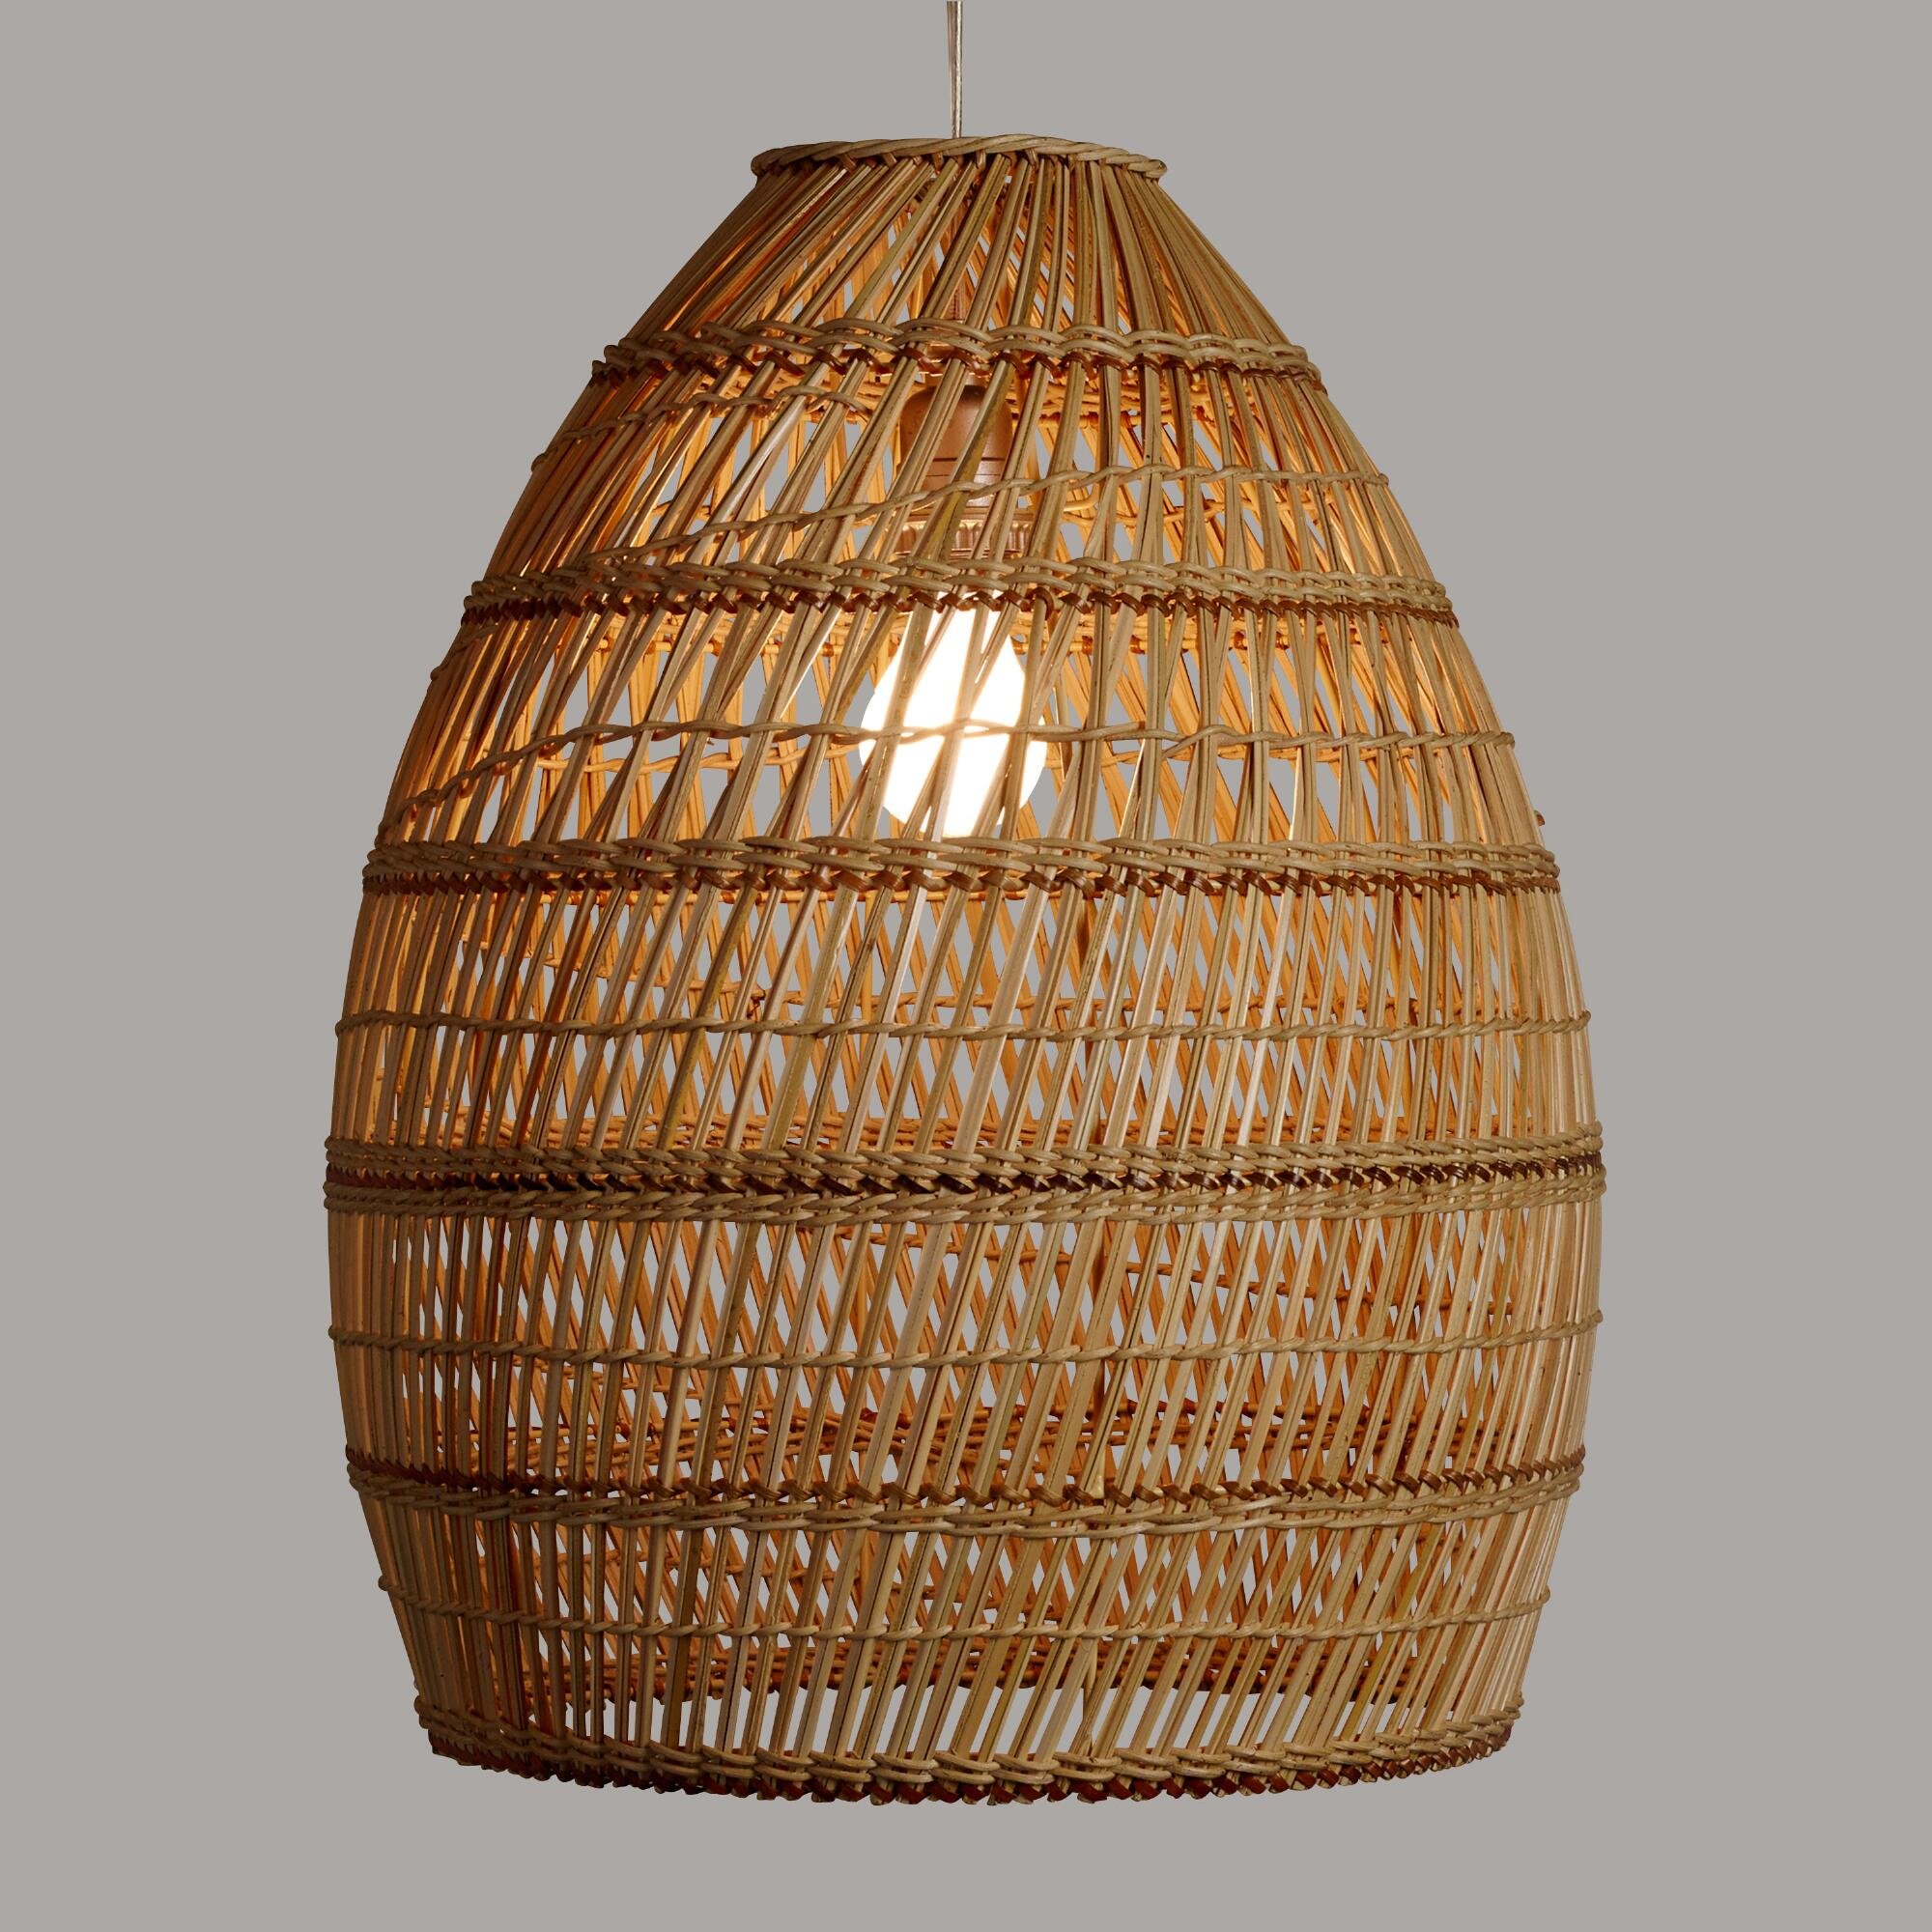 Hand Woven Of Renewable Bamboo With An Eye Catching Texture Our